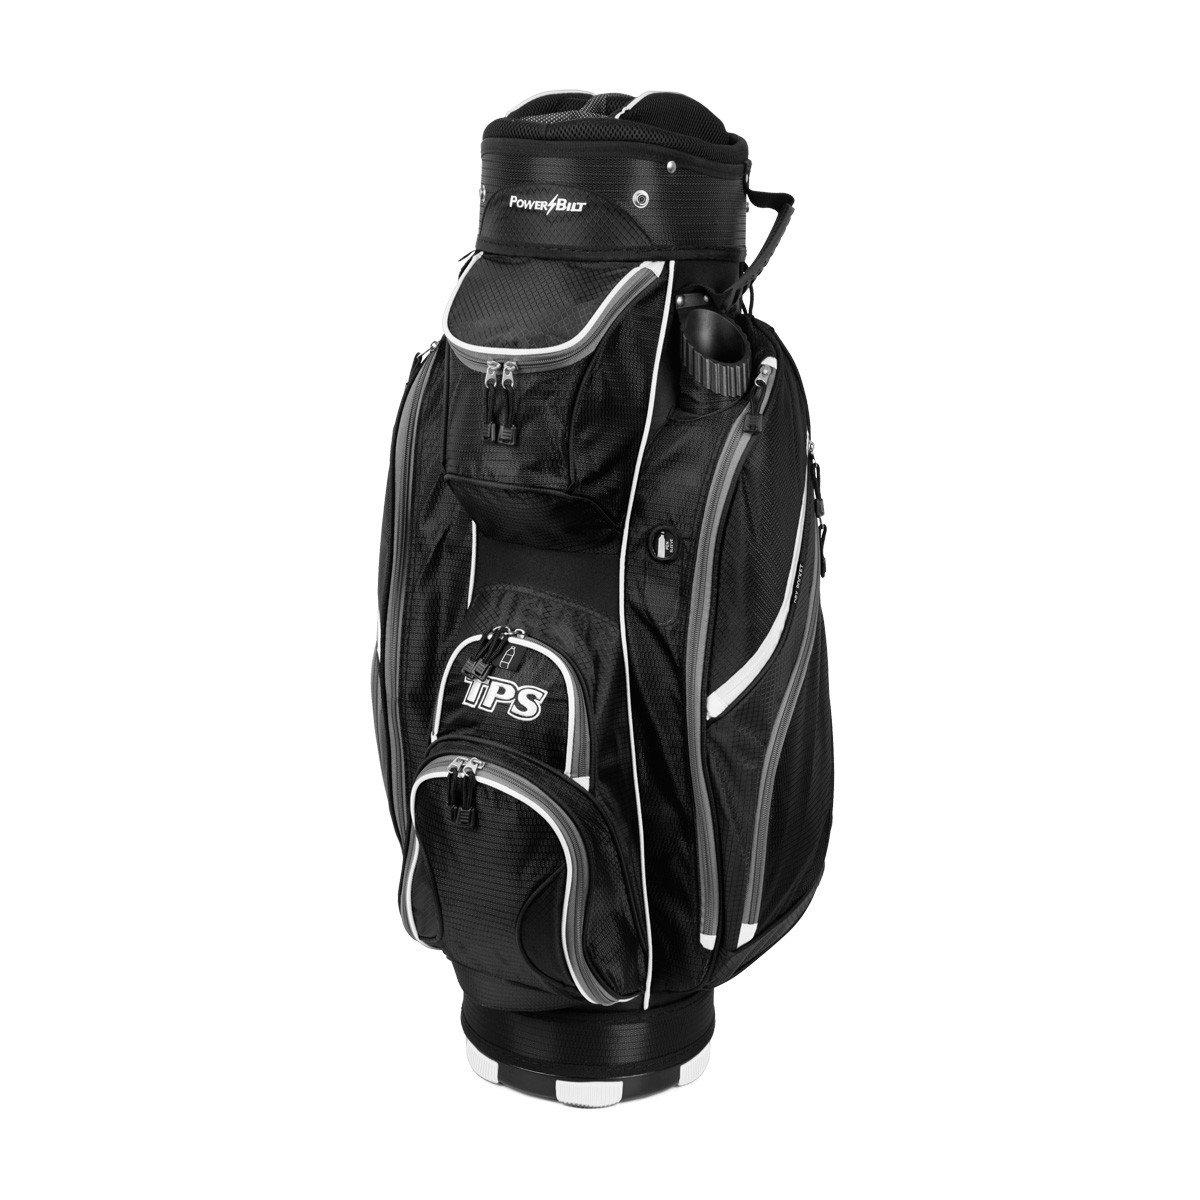 Powerbilt Tps 5400 black/Cart Golf Bag by PowerBilt (Image #1)